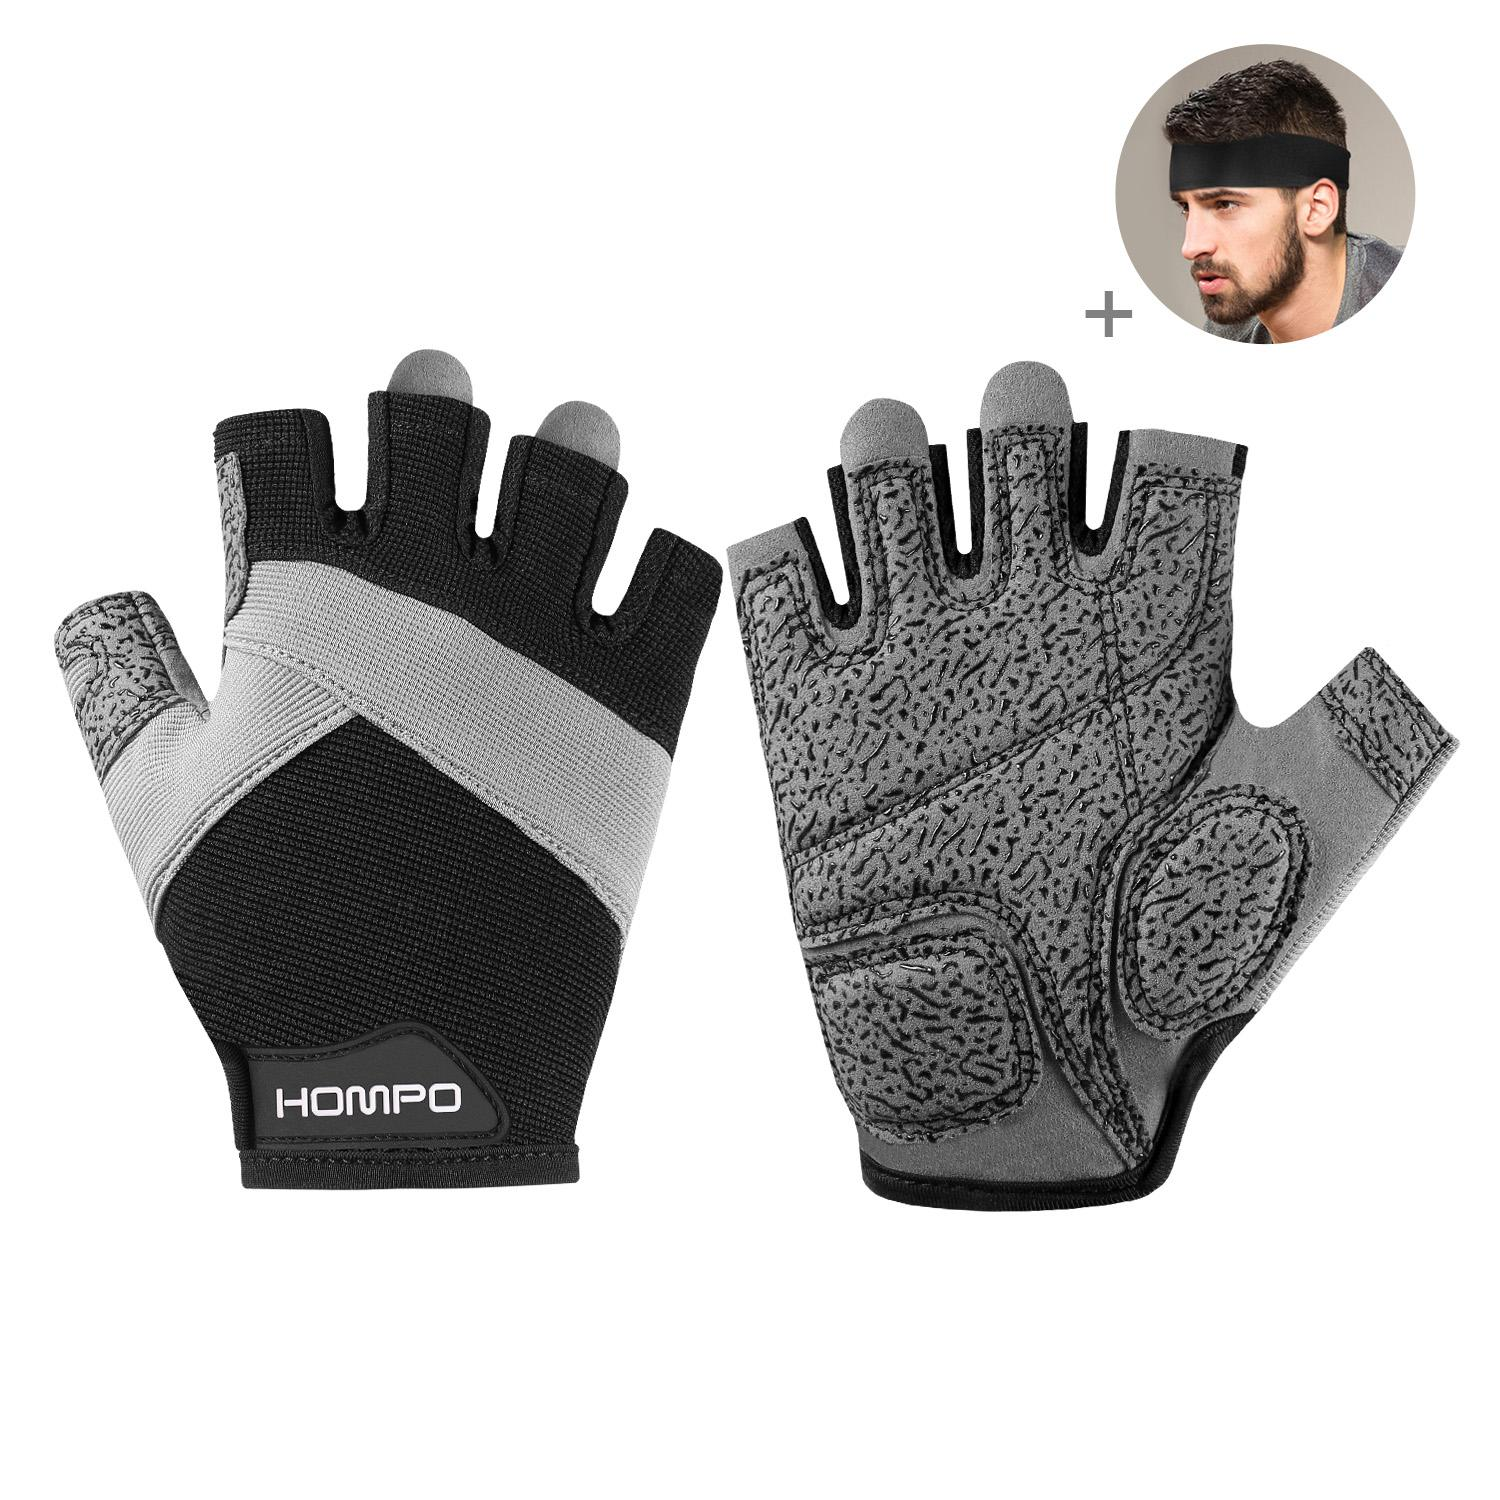 Hompo Workout Gloves, Premium Gym Grade Weight Lifting Body Building Training Fitness Sports Gloves With Free Headband By Wripples.